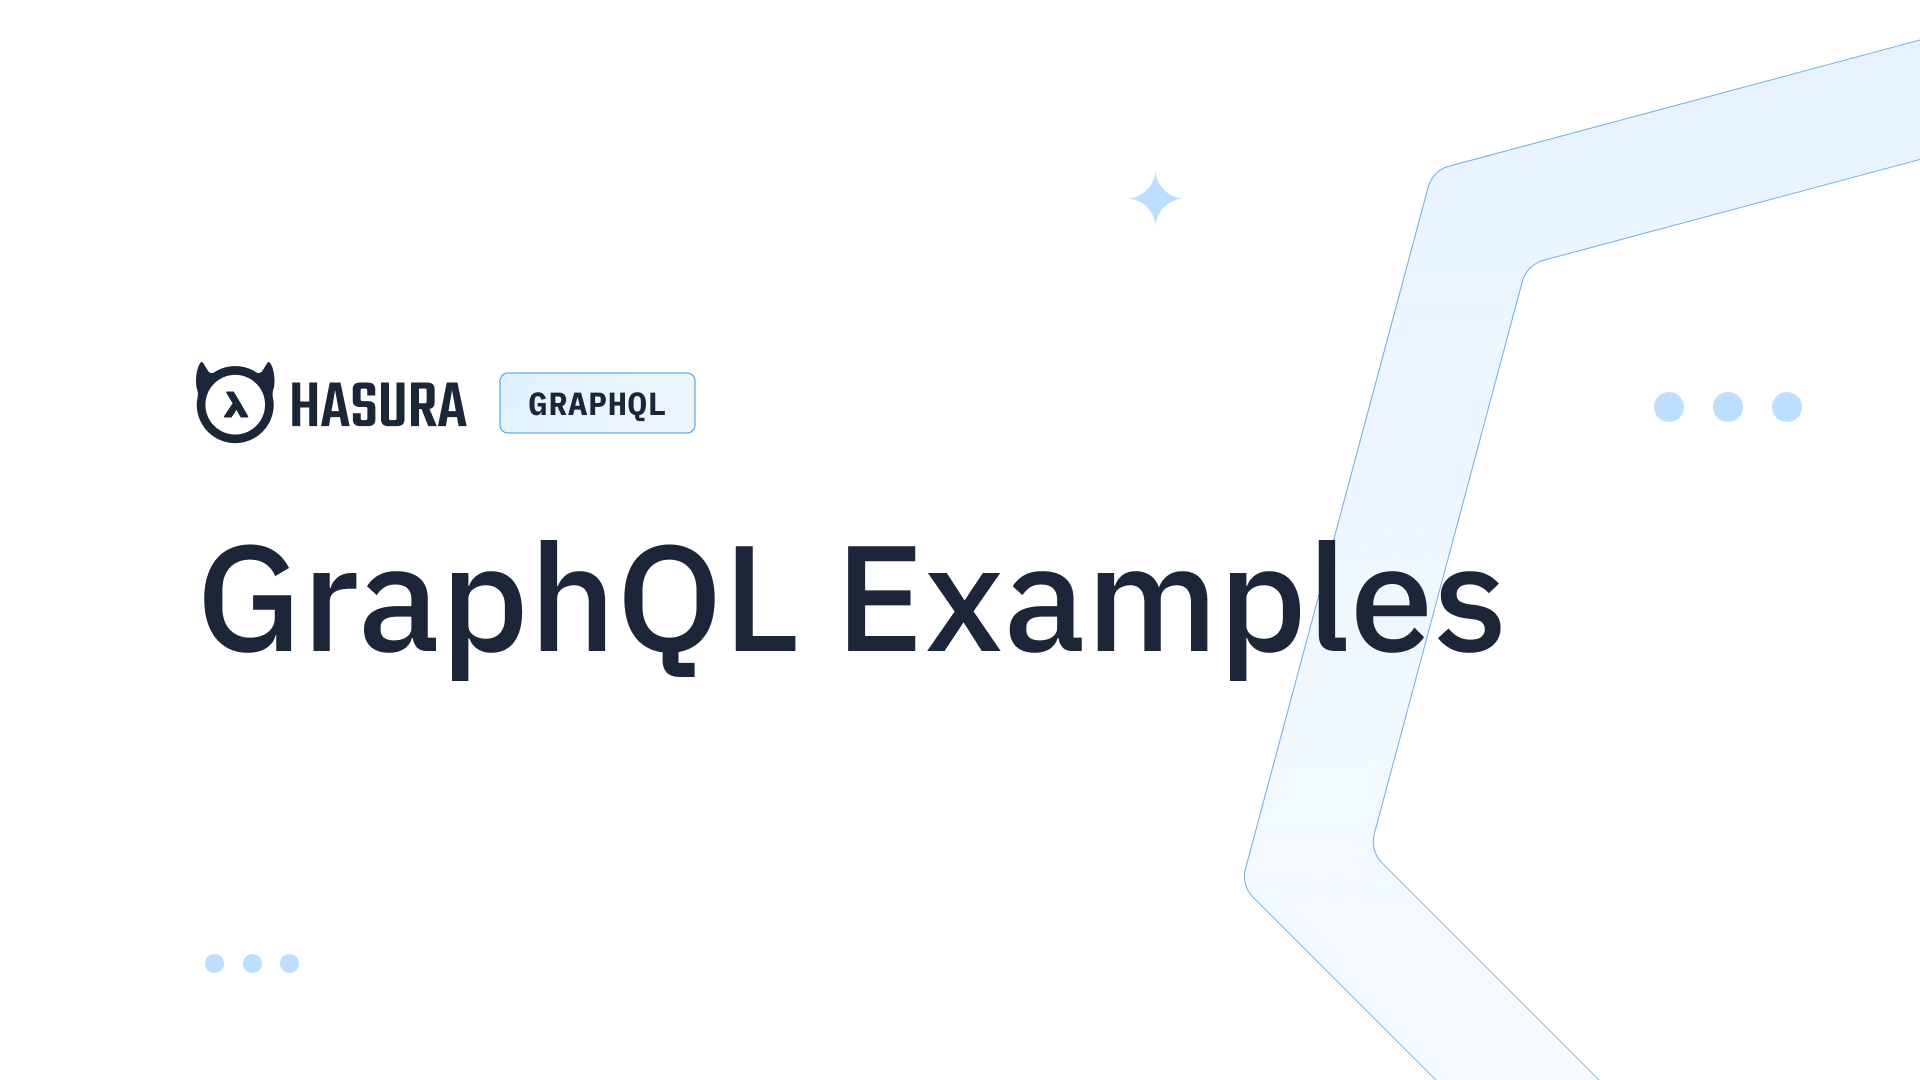 Modern GraphQL examples with strings, compilers, and SDKs